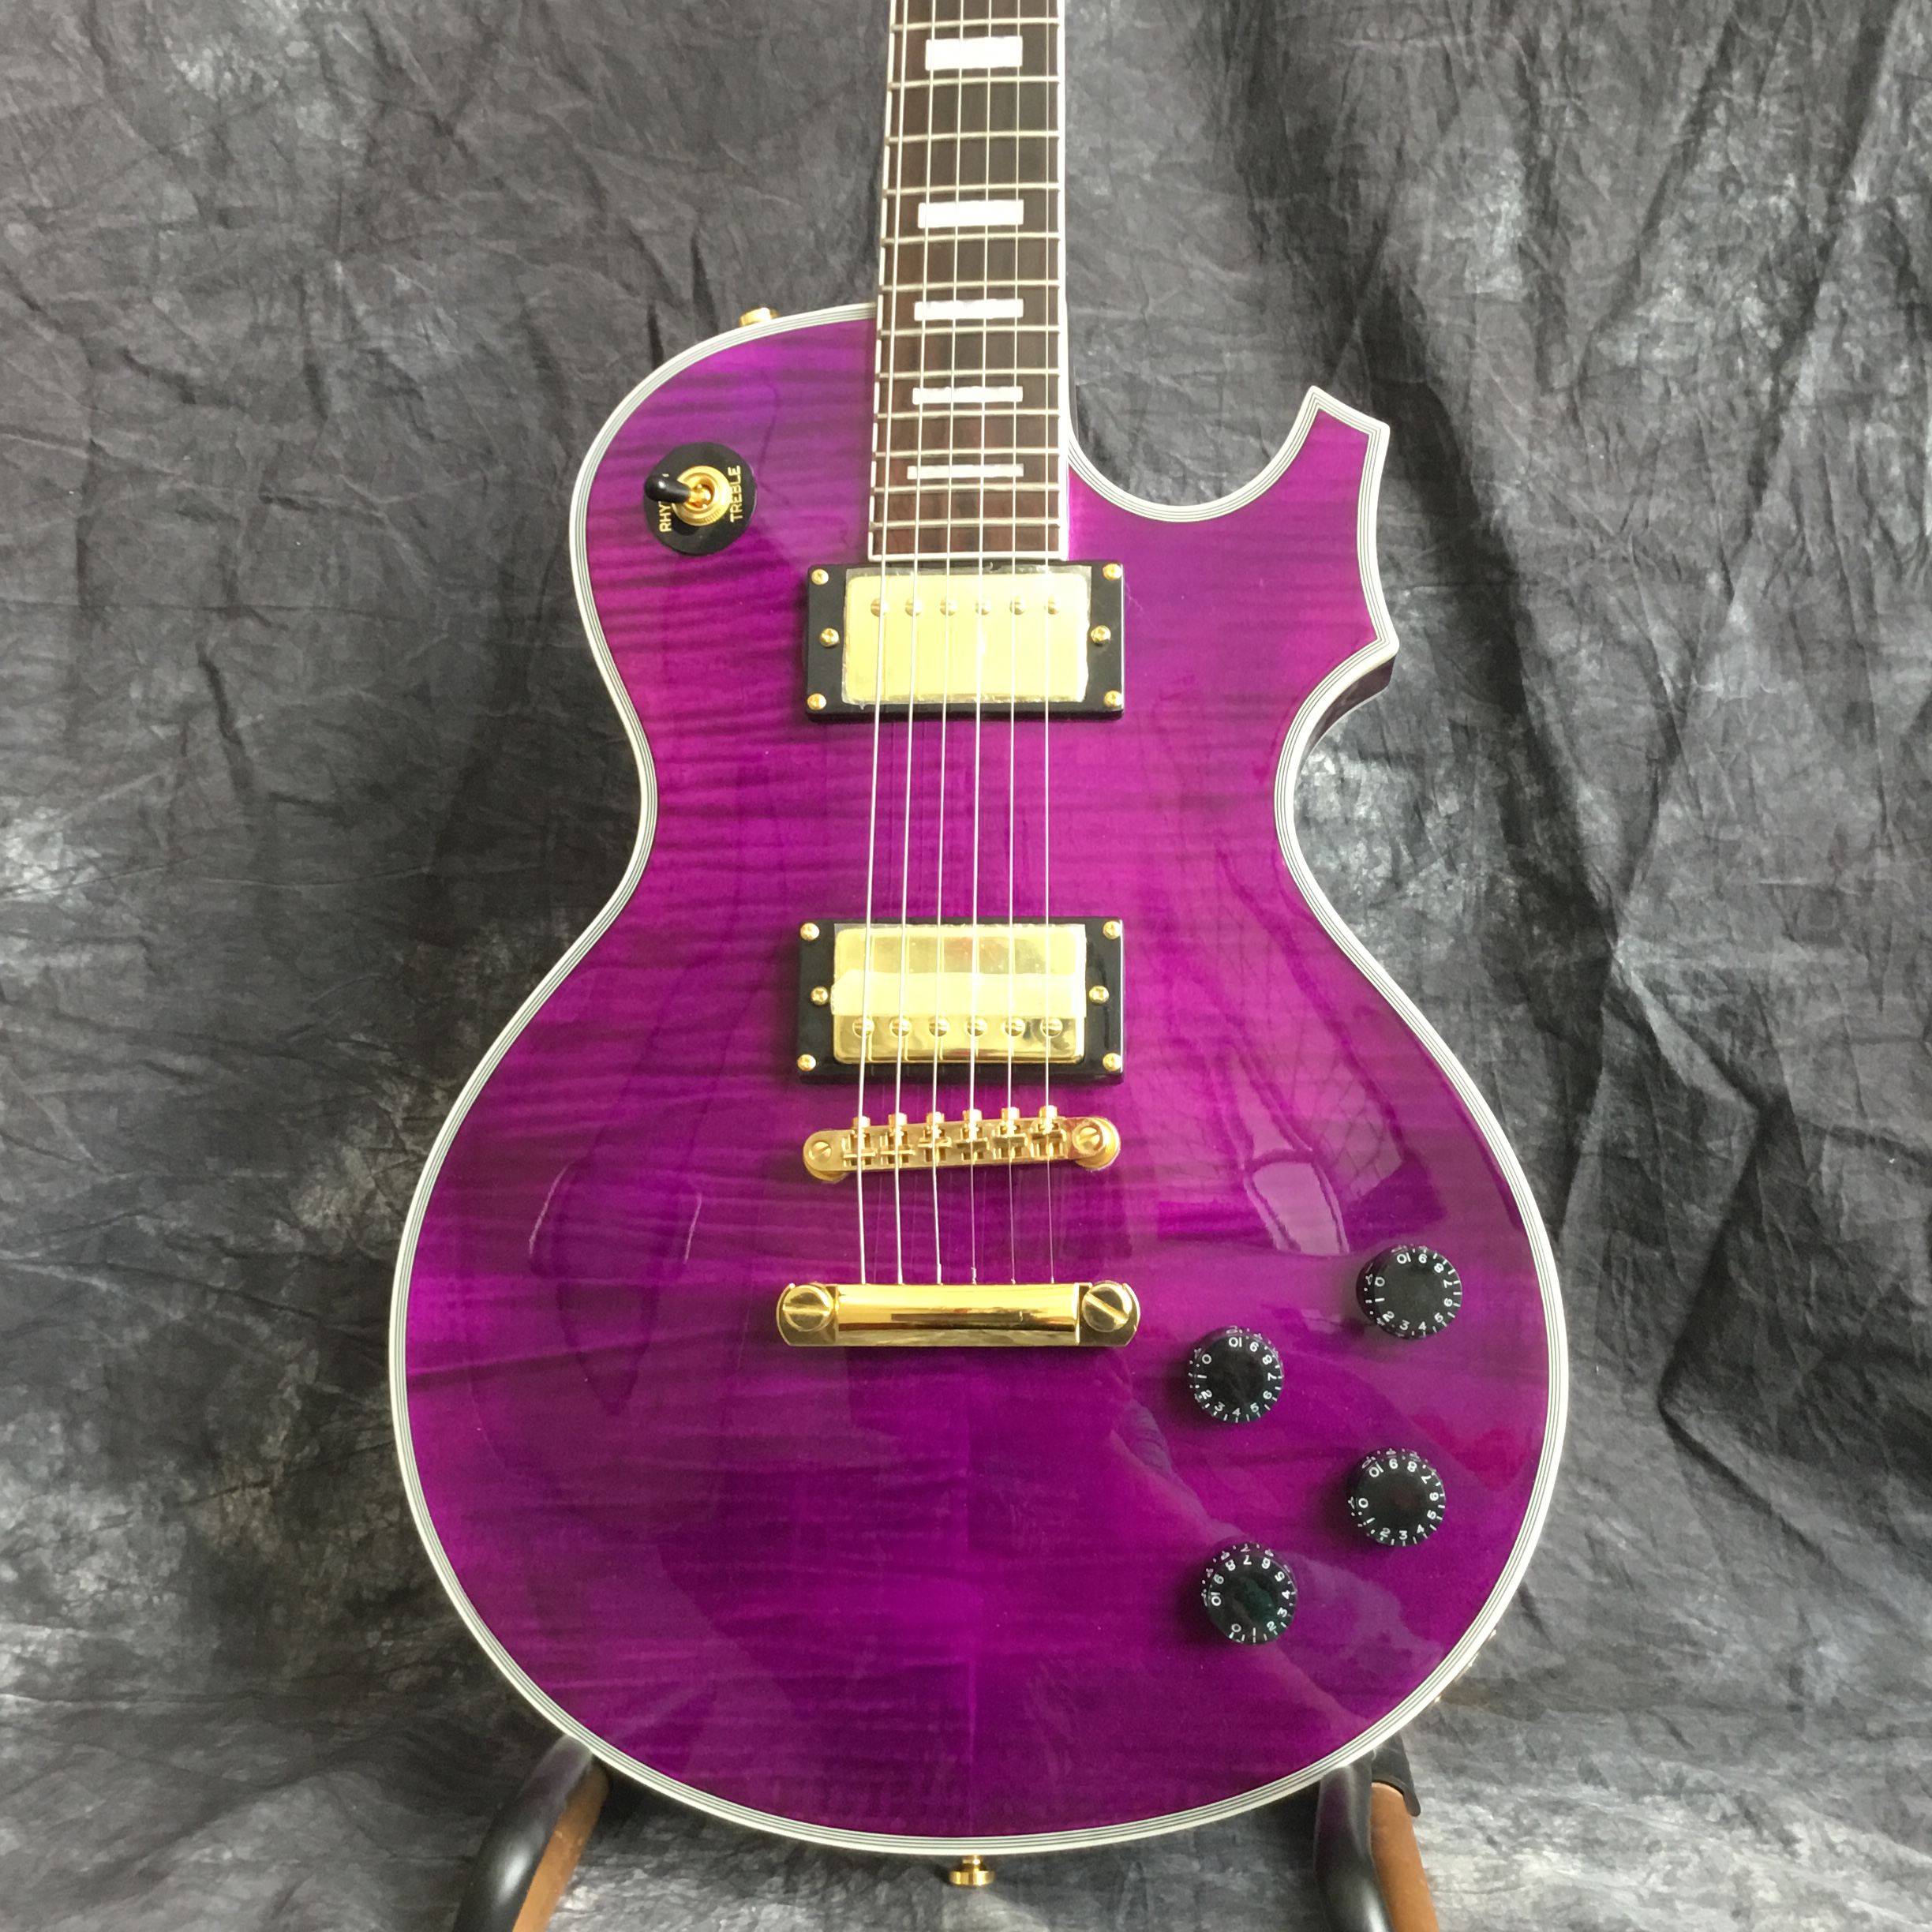 suneye 2019 The Collector's Choice 1959 Paul Custom Shop Purple Electric Guitar Freeshipping With Hardcase In stock